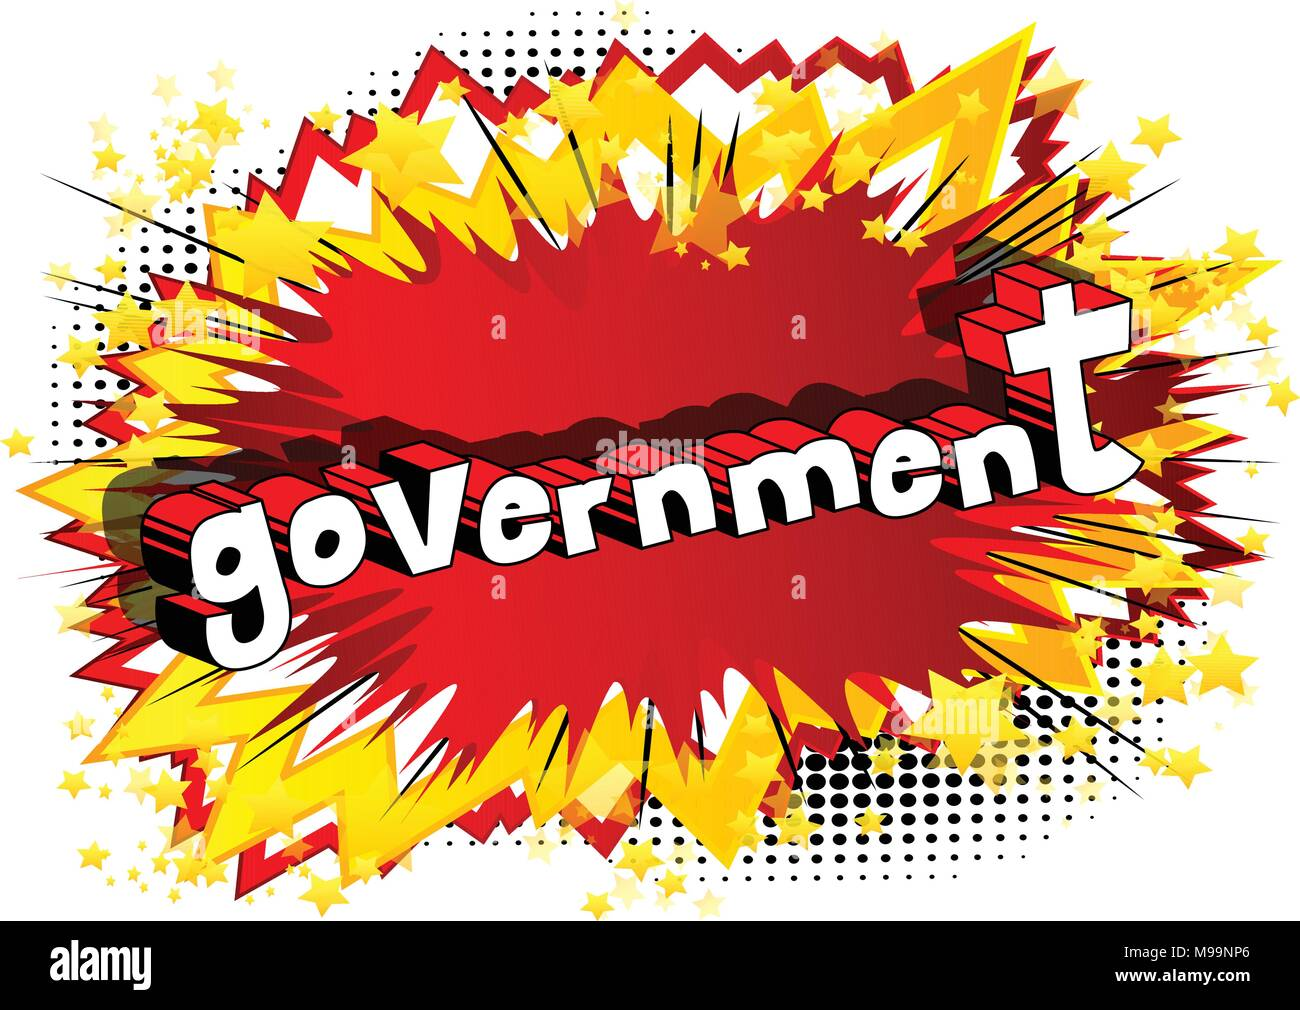 Government - Comic book style phrase on abstract background. - Stock Vector